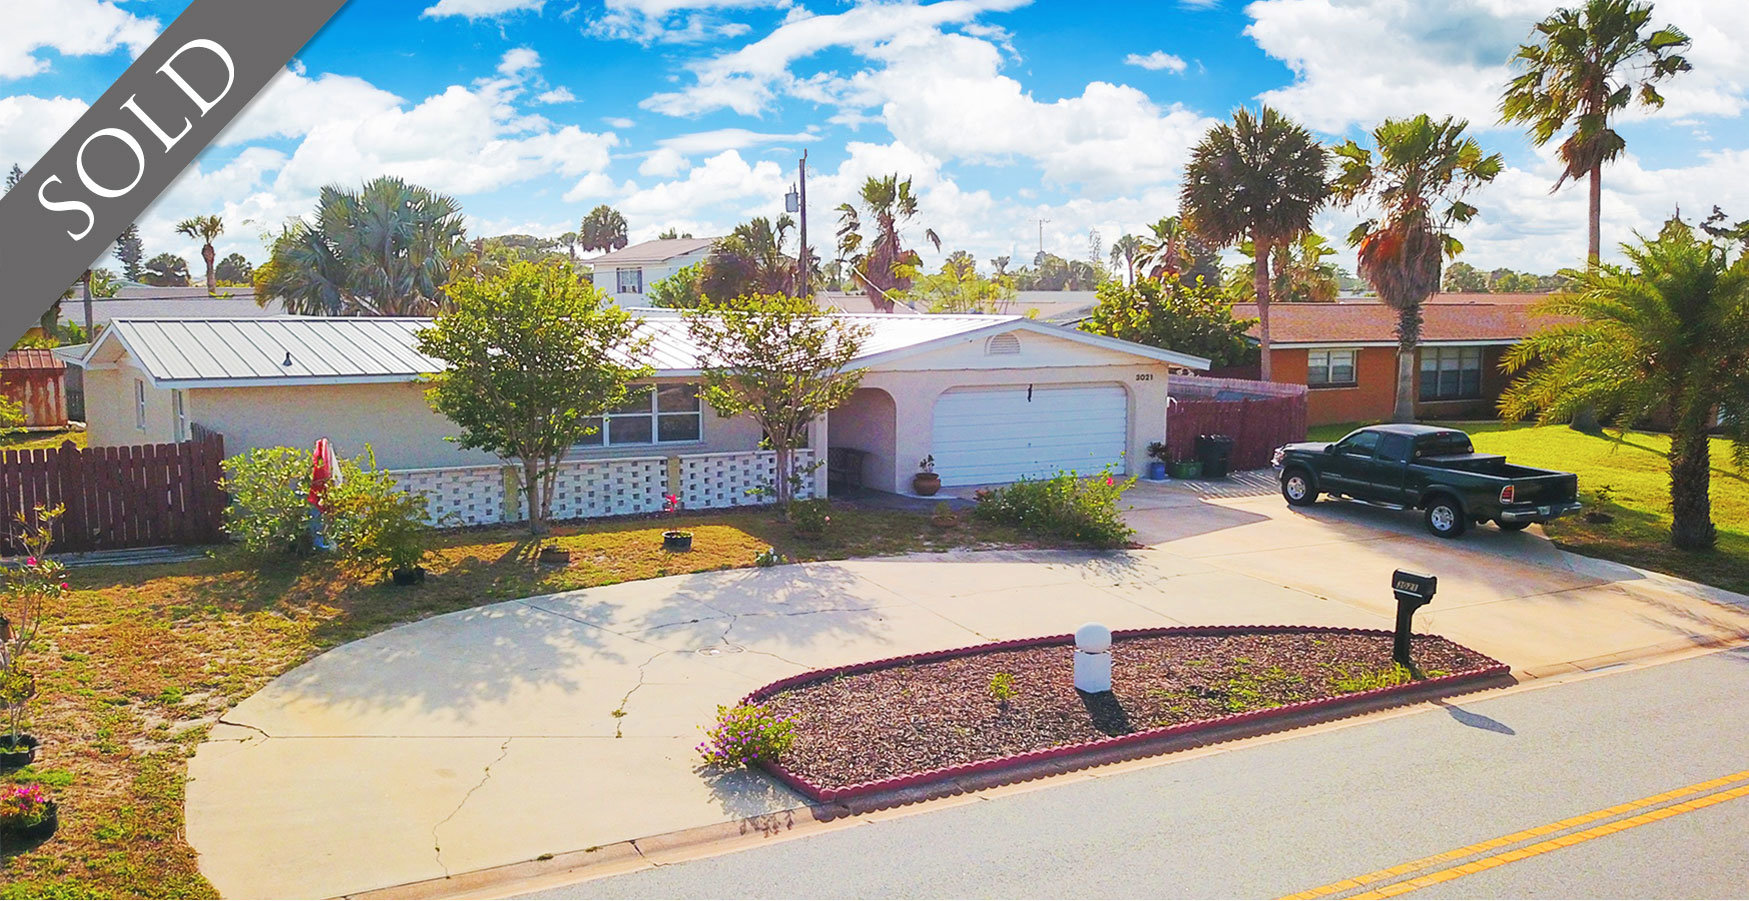 Daytona Beach home Just Sold. Beachside home at 3021 N Oleander Ave, Daytona Beach, FL 32118